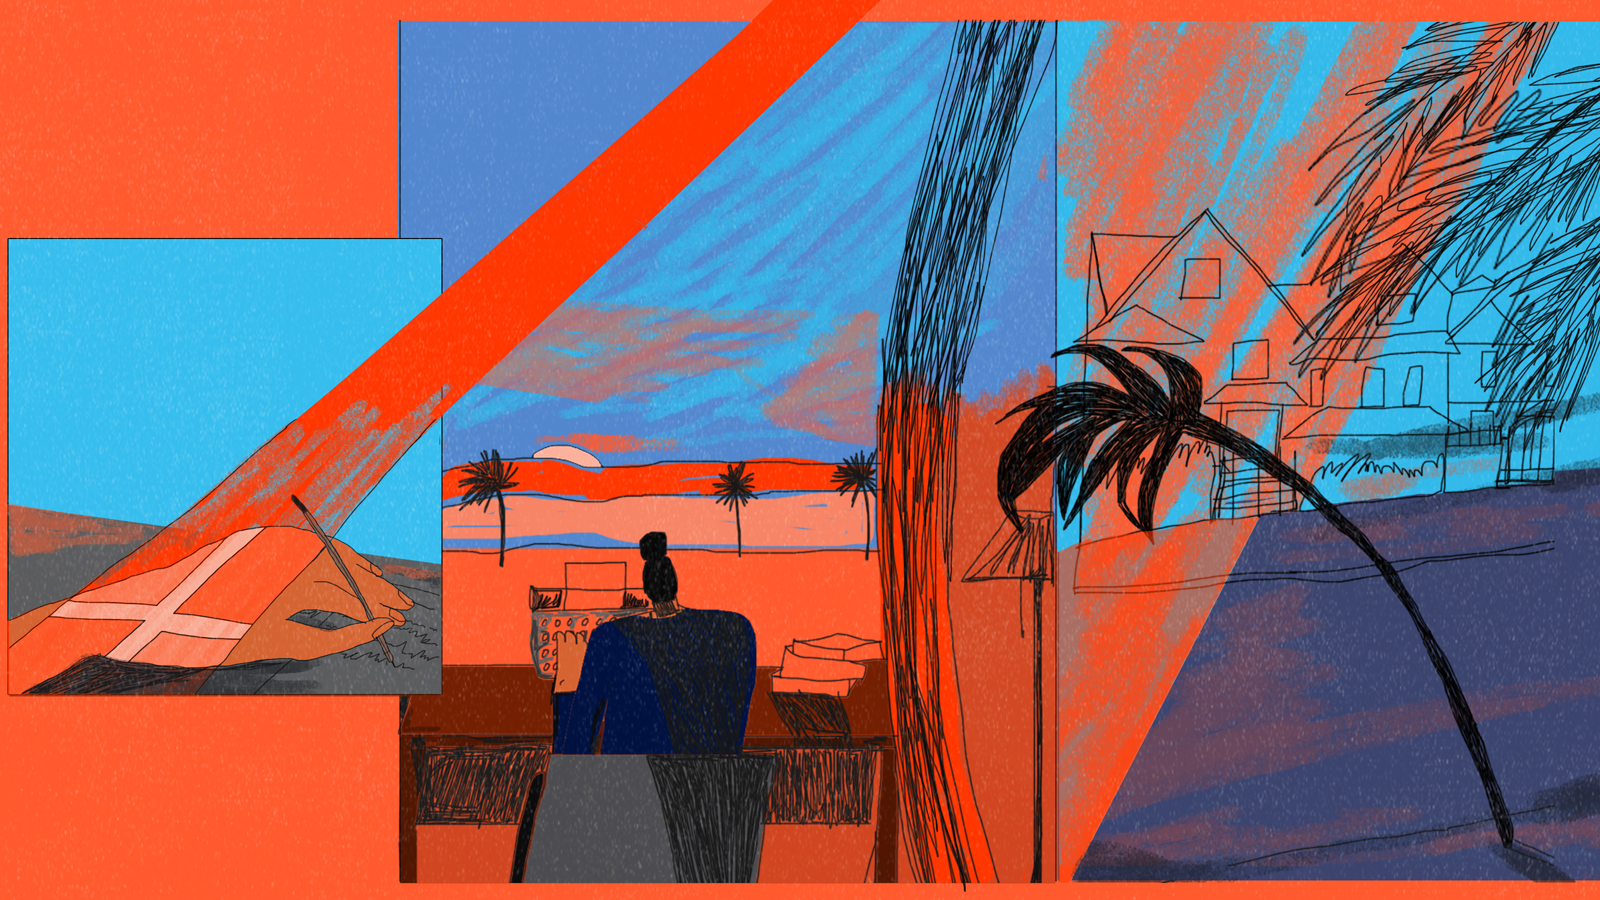 Illustration by Hannah Buckman interpreting Andrea Levy's essay Back To My Own Country. There are three images: close-up of a hand writing with a ray of light containing the Jamaican flag, a woman sat at a desk on a typewriter, and houses with a street and a palm tree